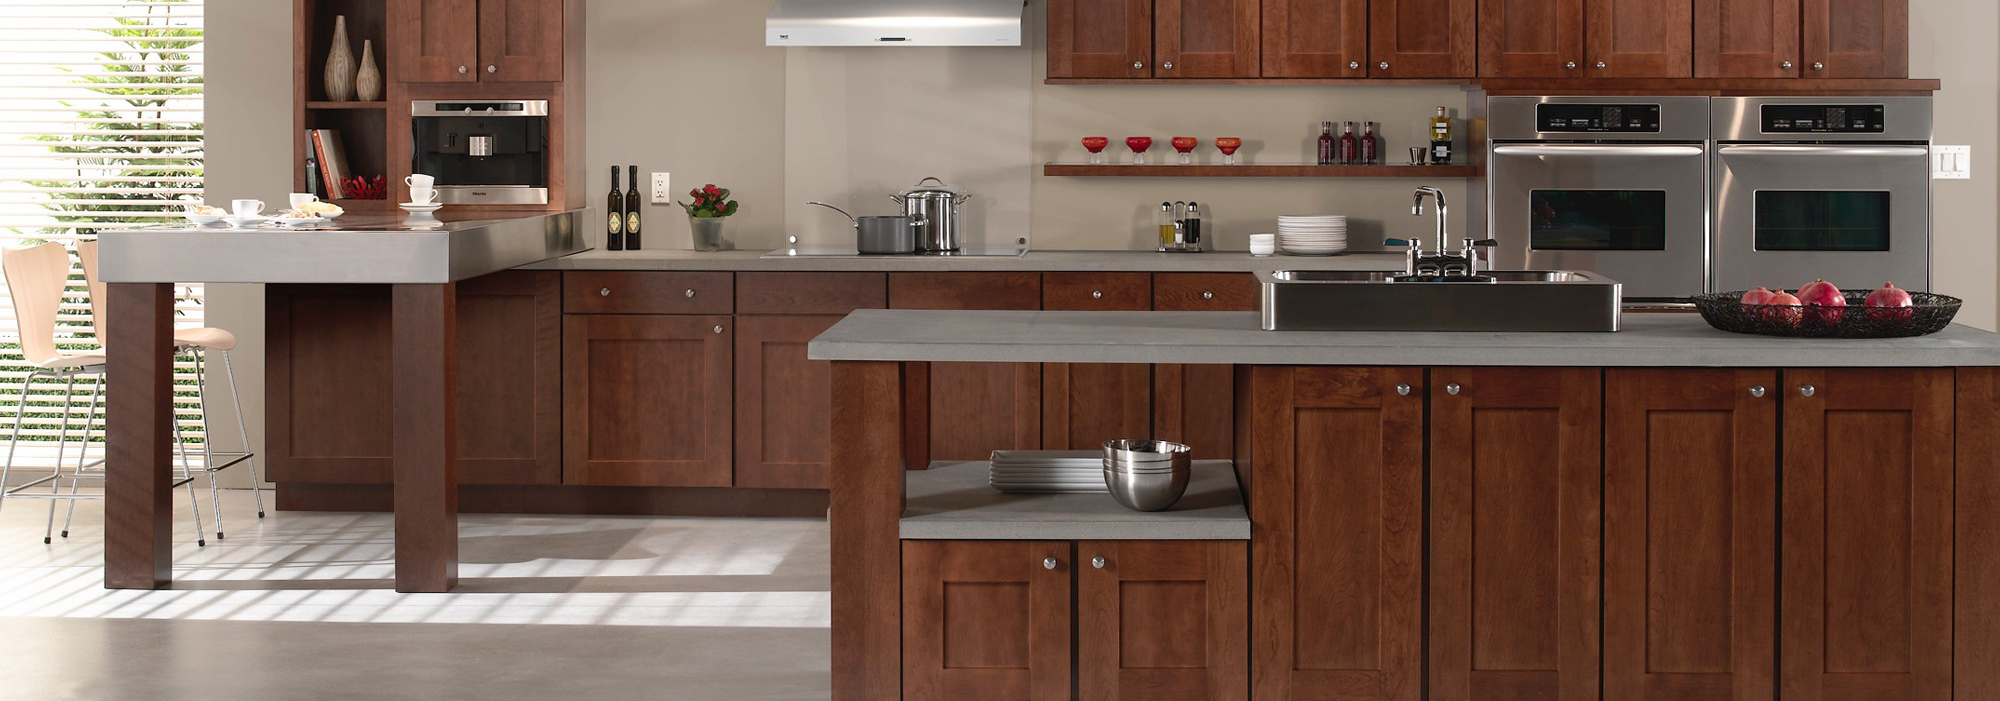 kitchen cabinets online wholesale used dallas tx - nextdaycabinets.com